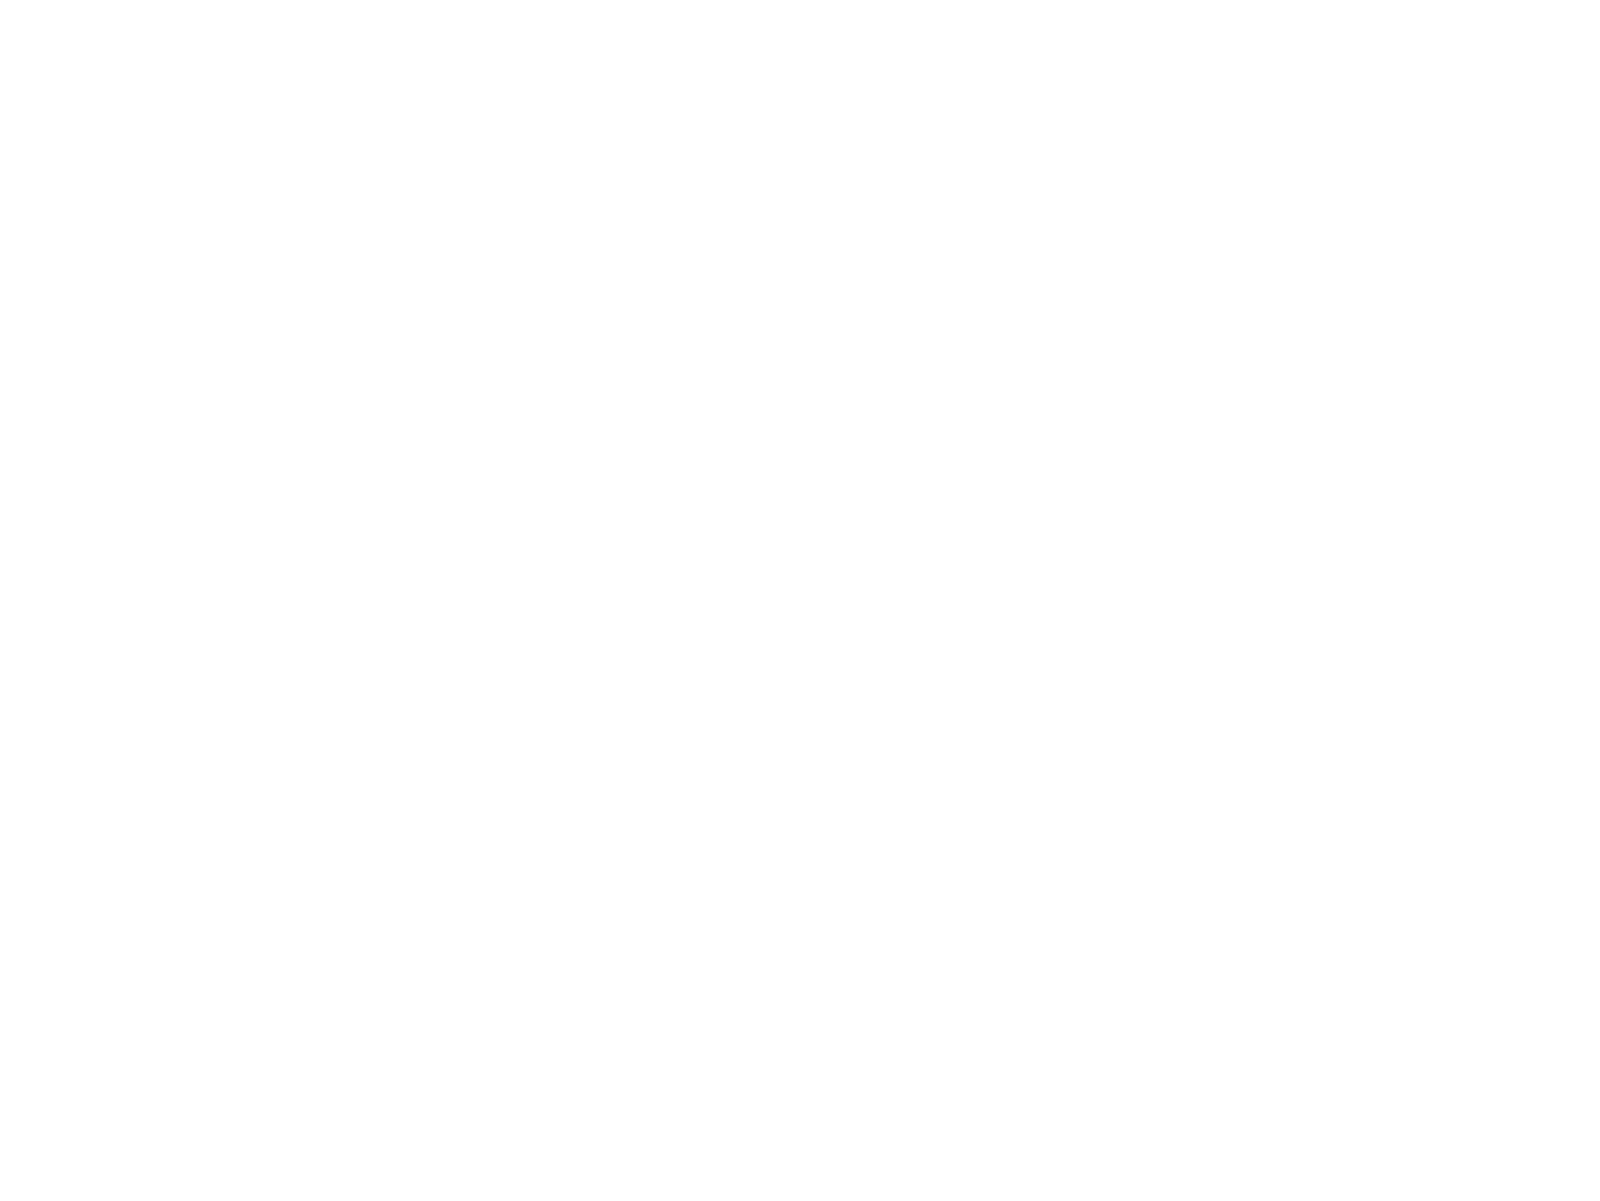 6-state-line.png